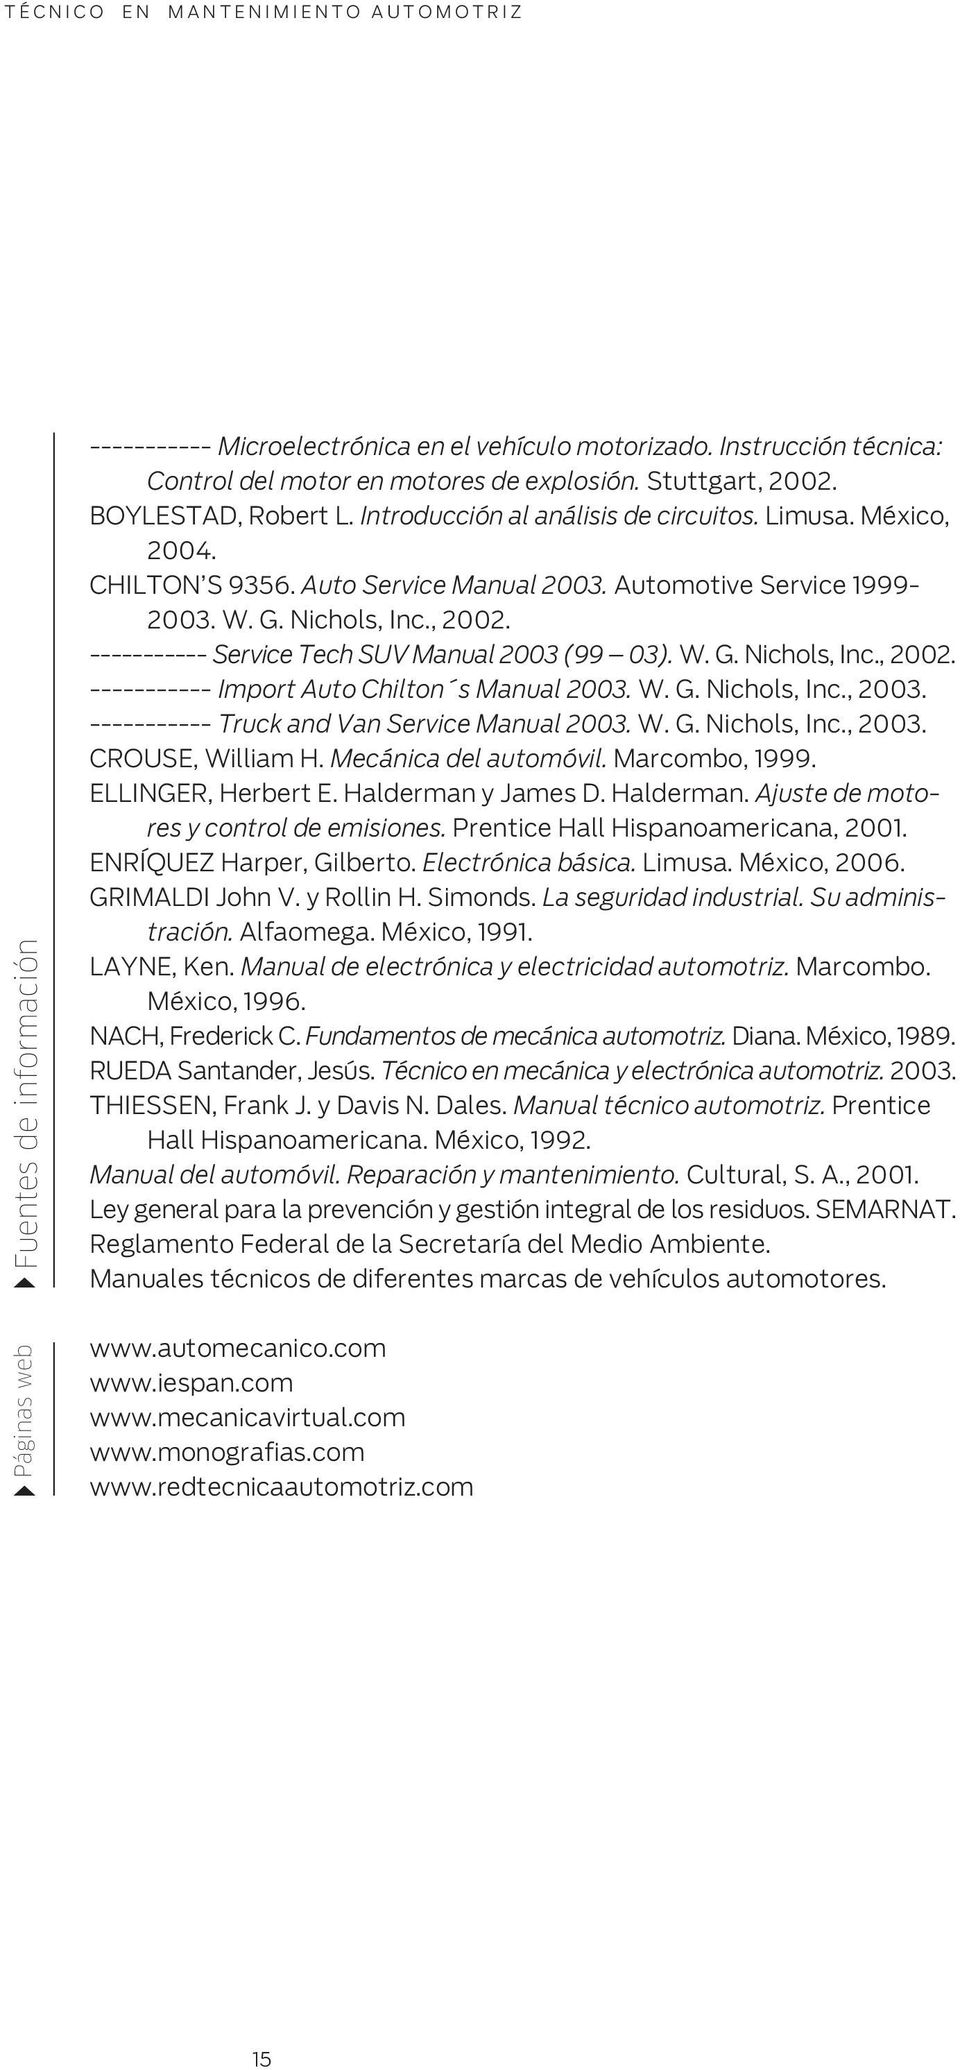 ----------- Service Tech SUV Manual 2003 (99 03). W. G. Nichols, Inc., 2002. ----------- Import Auto Chilton s Manual 2003. W. G. Nichols, Inc., 2003. ----------- Truck and Van Service Manual 2003. W. G. Nichols, Inc., 2003. CROUSE, William H.